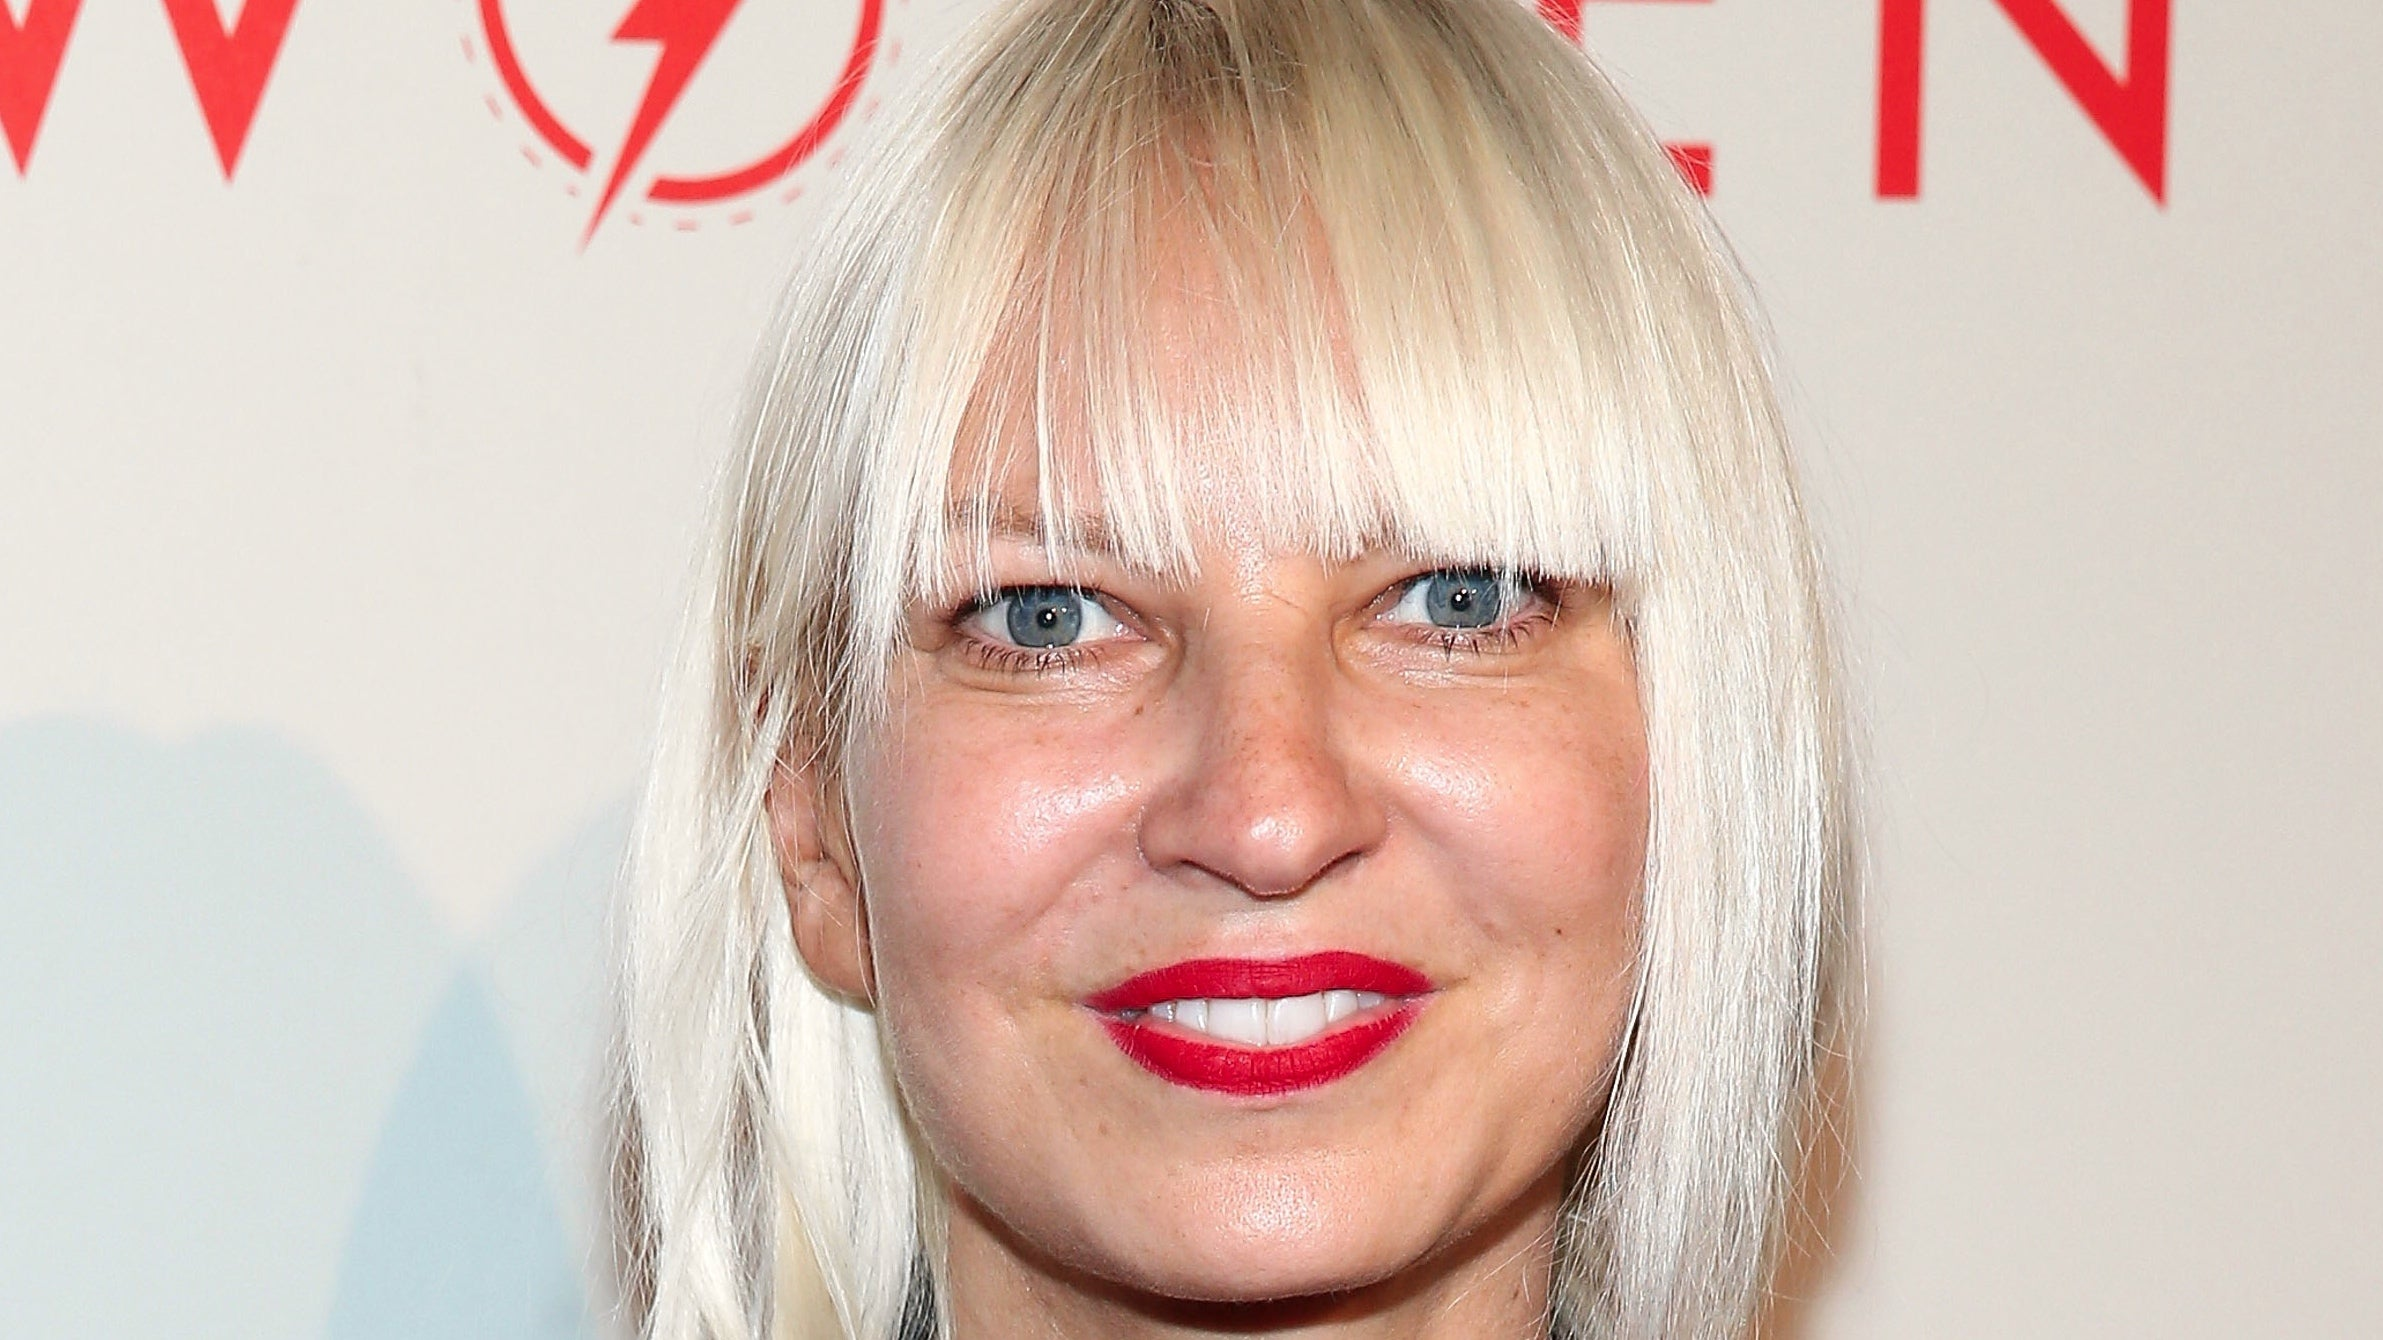 Sia: Sia Briefly Looked For Creative Ways To Punish Her Dry Cleaner